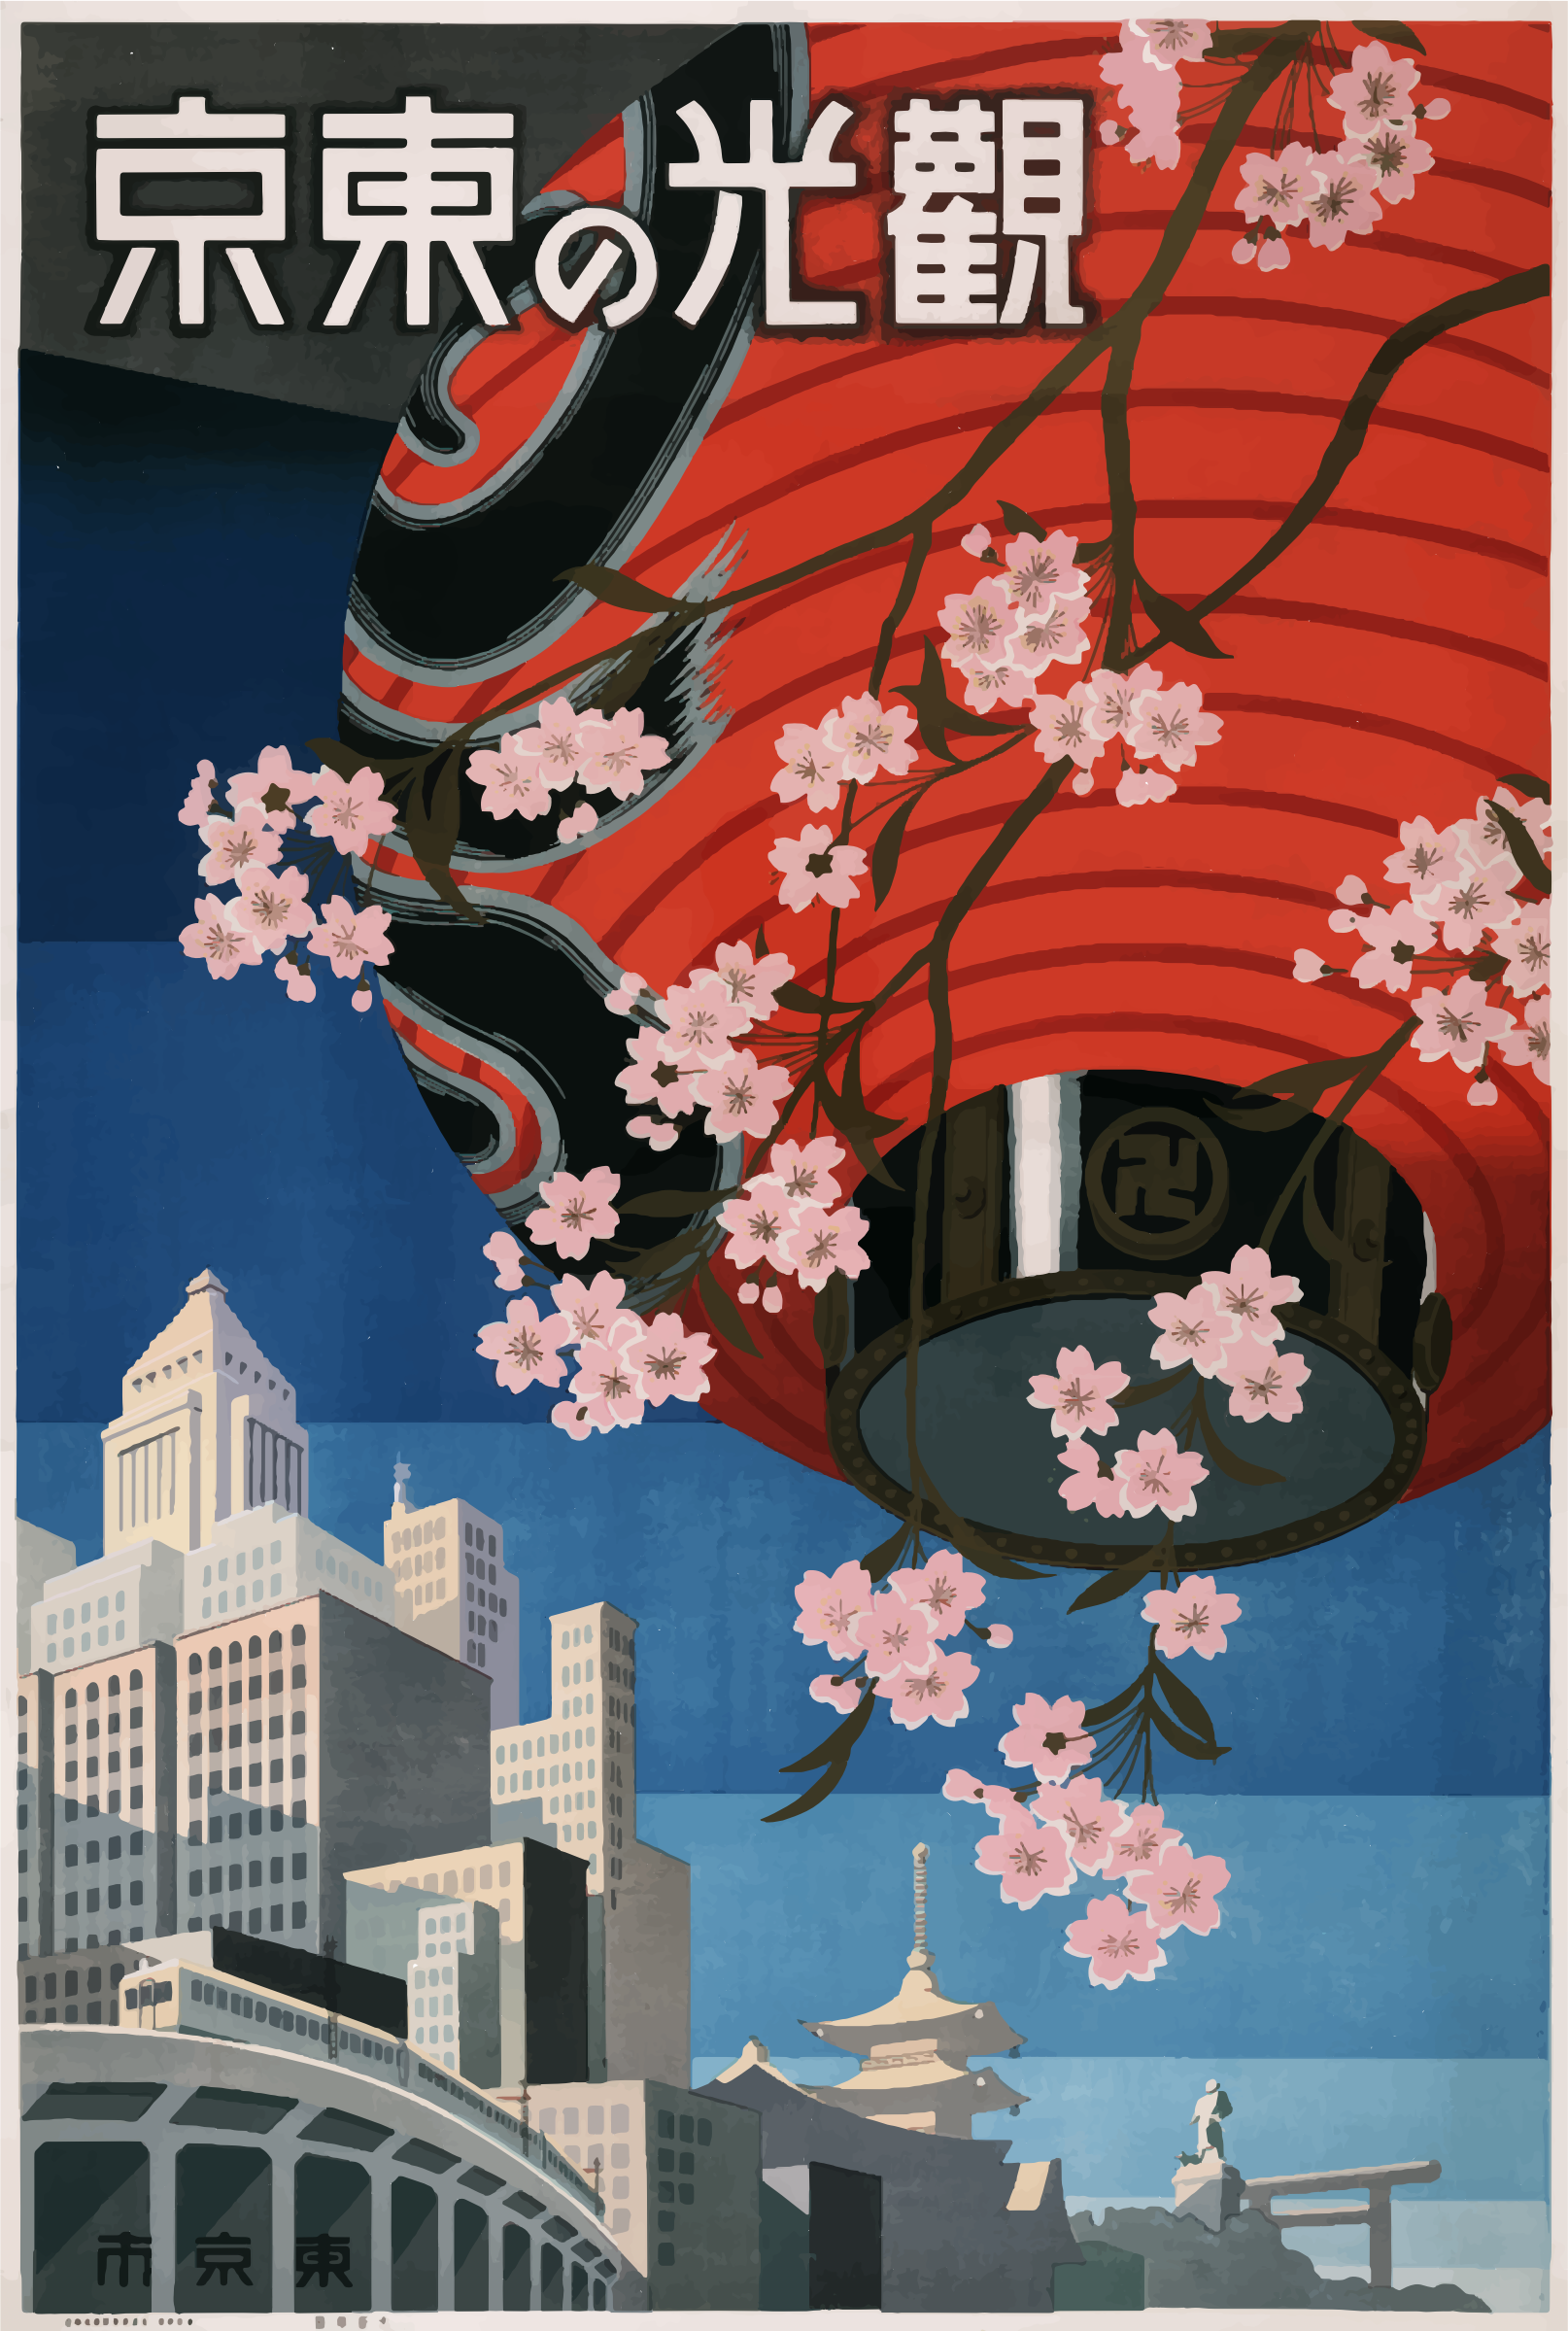 clipart vintage travel poster tokyo japan 1930s. Black Bedroom Furniture Sets. Home Design Ideas